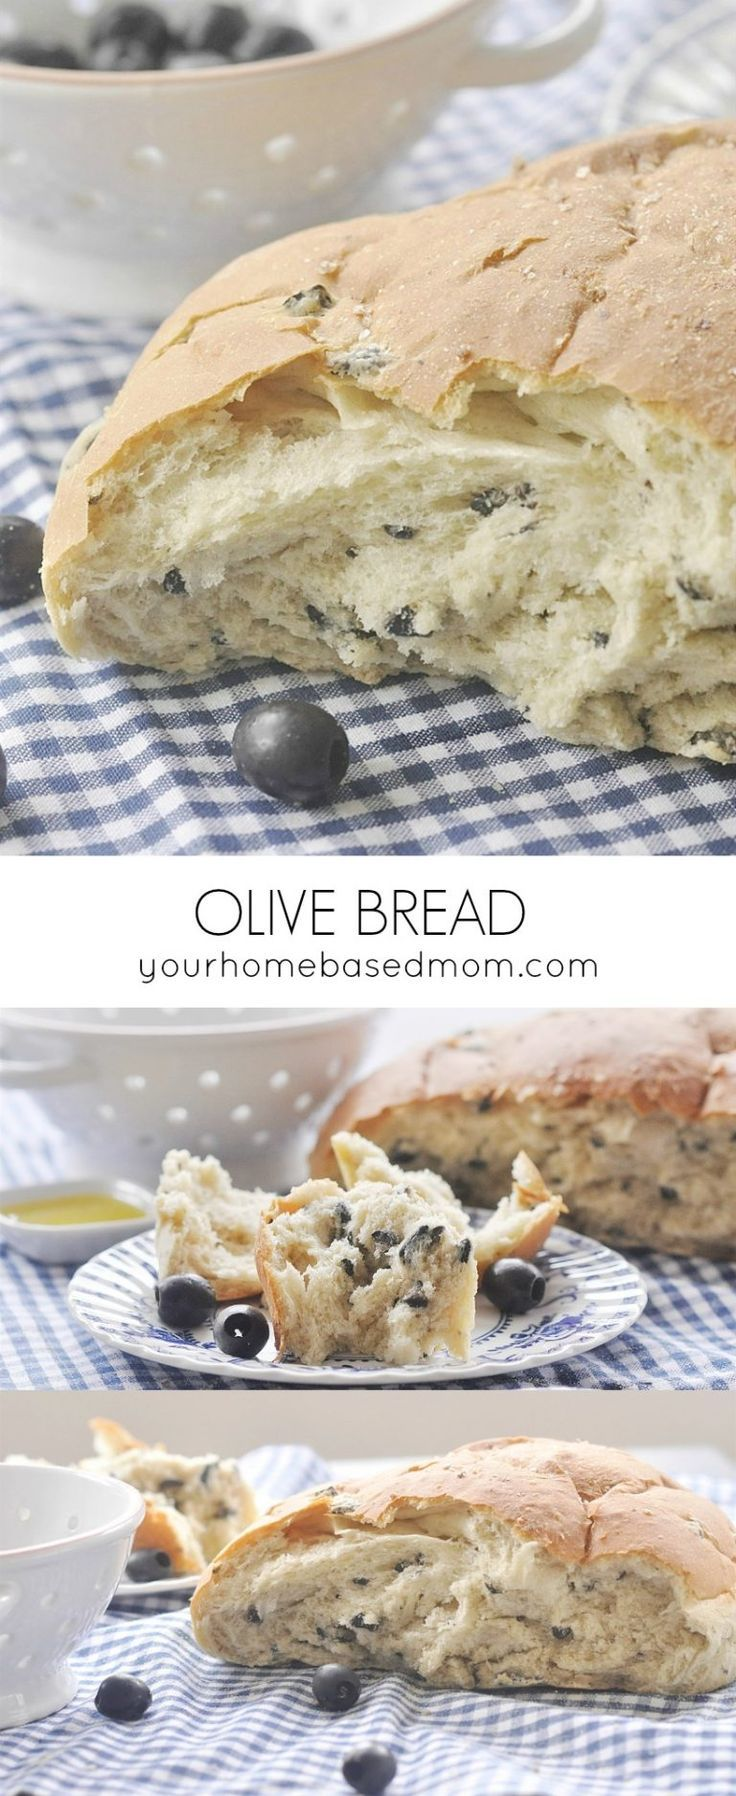 Olive Bread Side Recipe - Olive Bread is the perfect thing to serve with a big green salad or a delicious pasta meal, or just about anything!